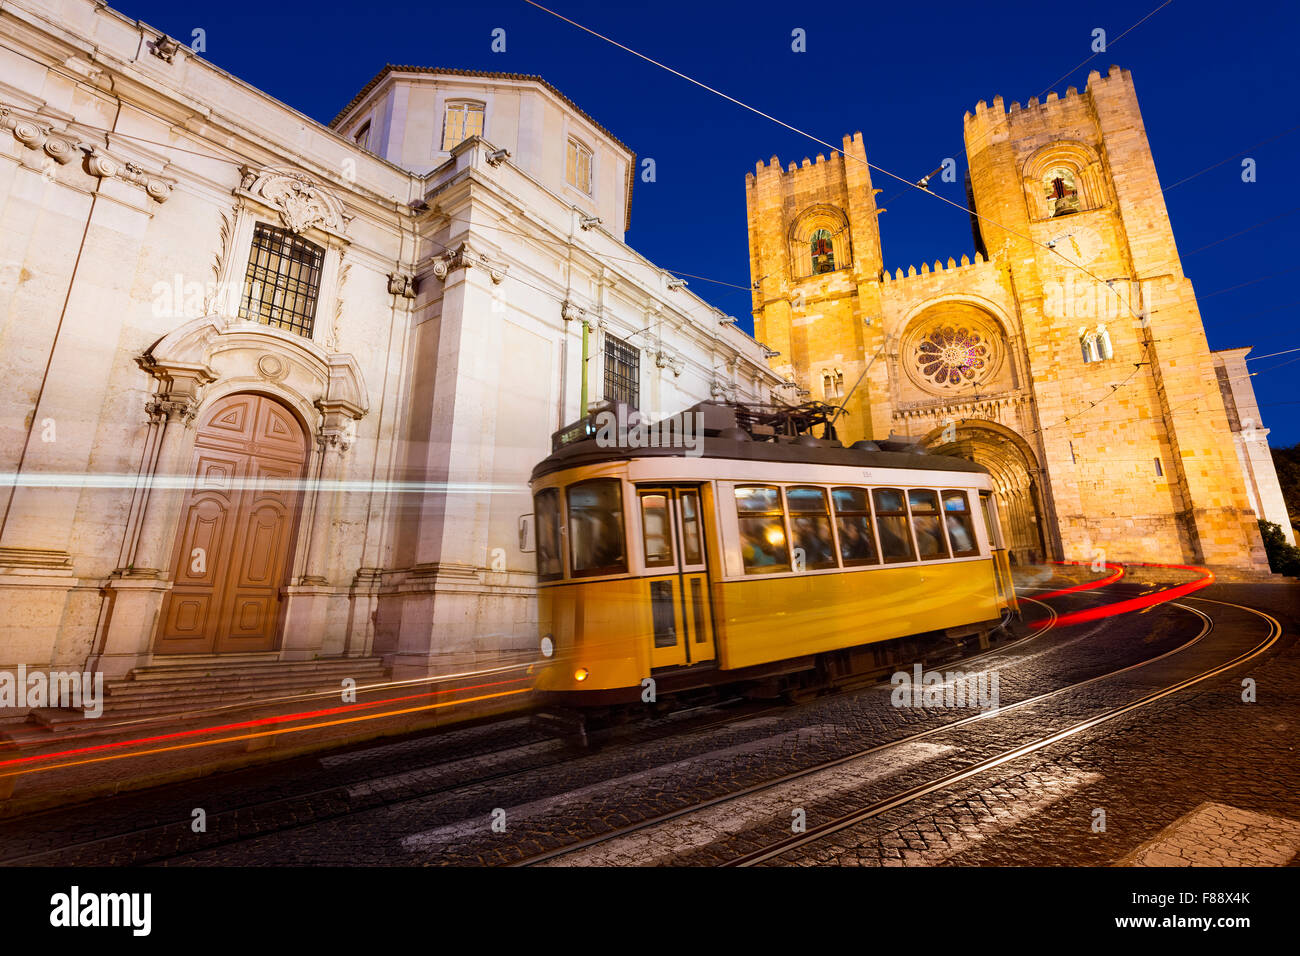 Tram in front of the Lisbon Cathedral at night - Stock Image